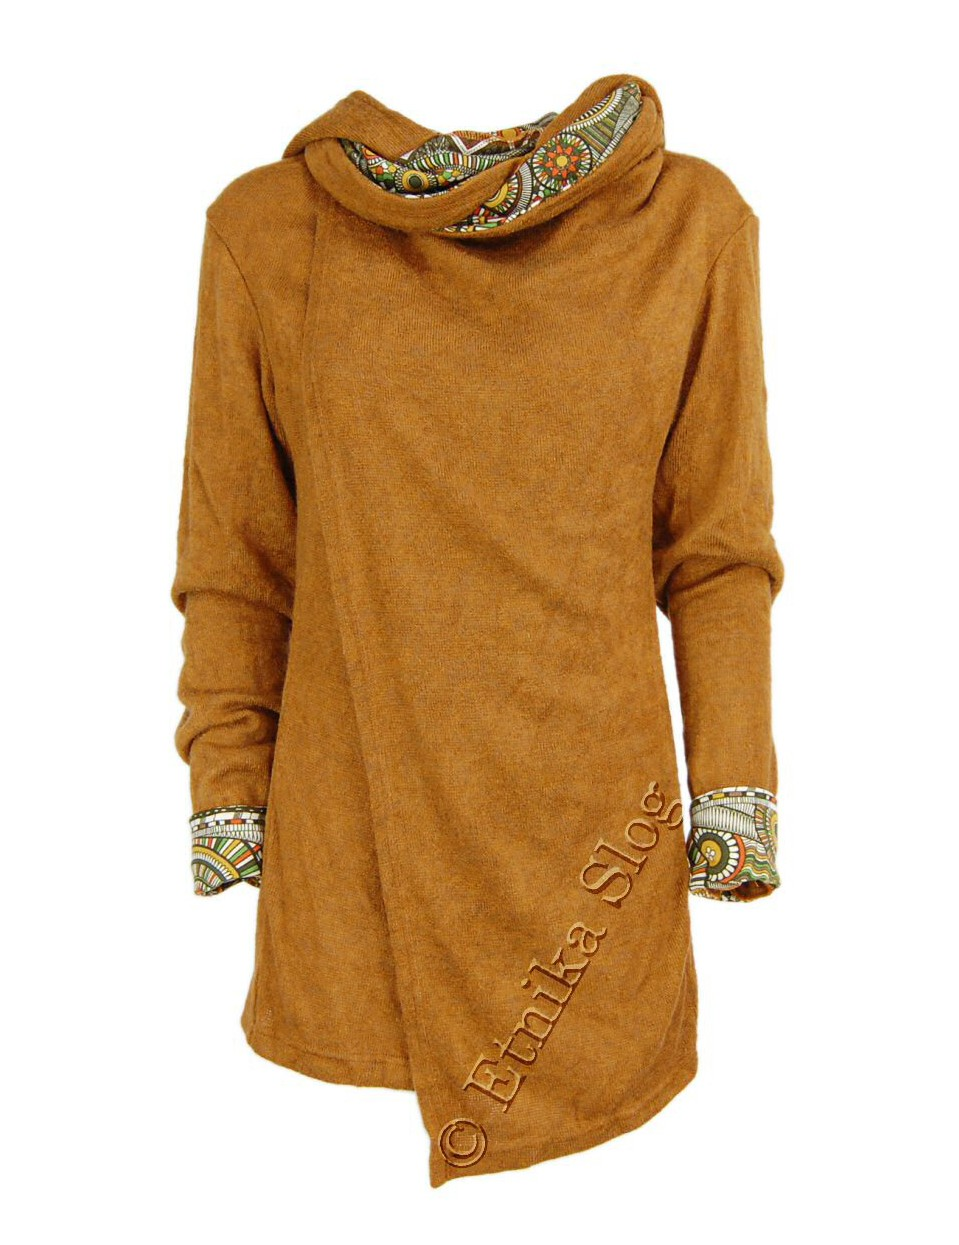 CAPES AND PONCHO AB-THJ072 - Oriente Import S.r.l.